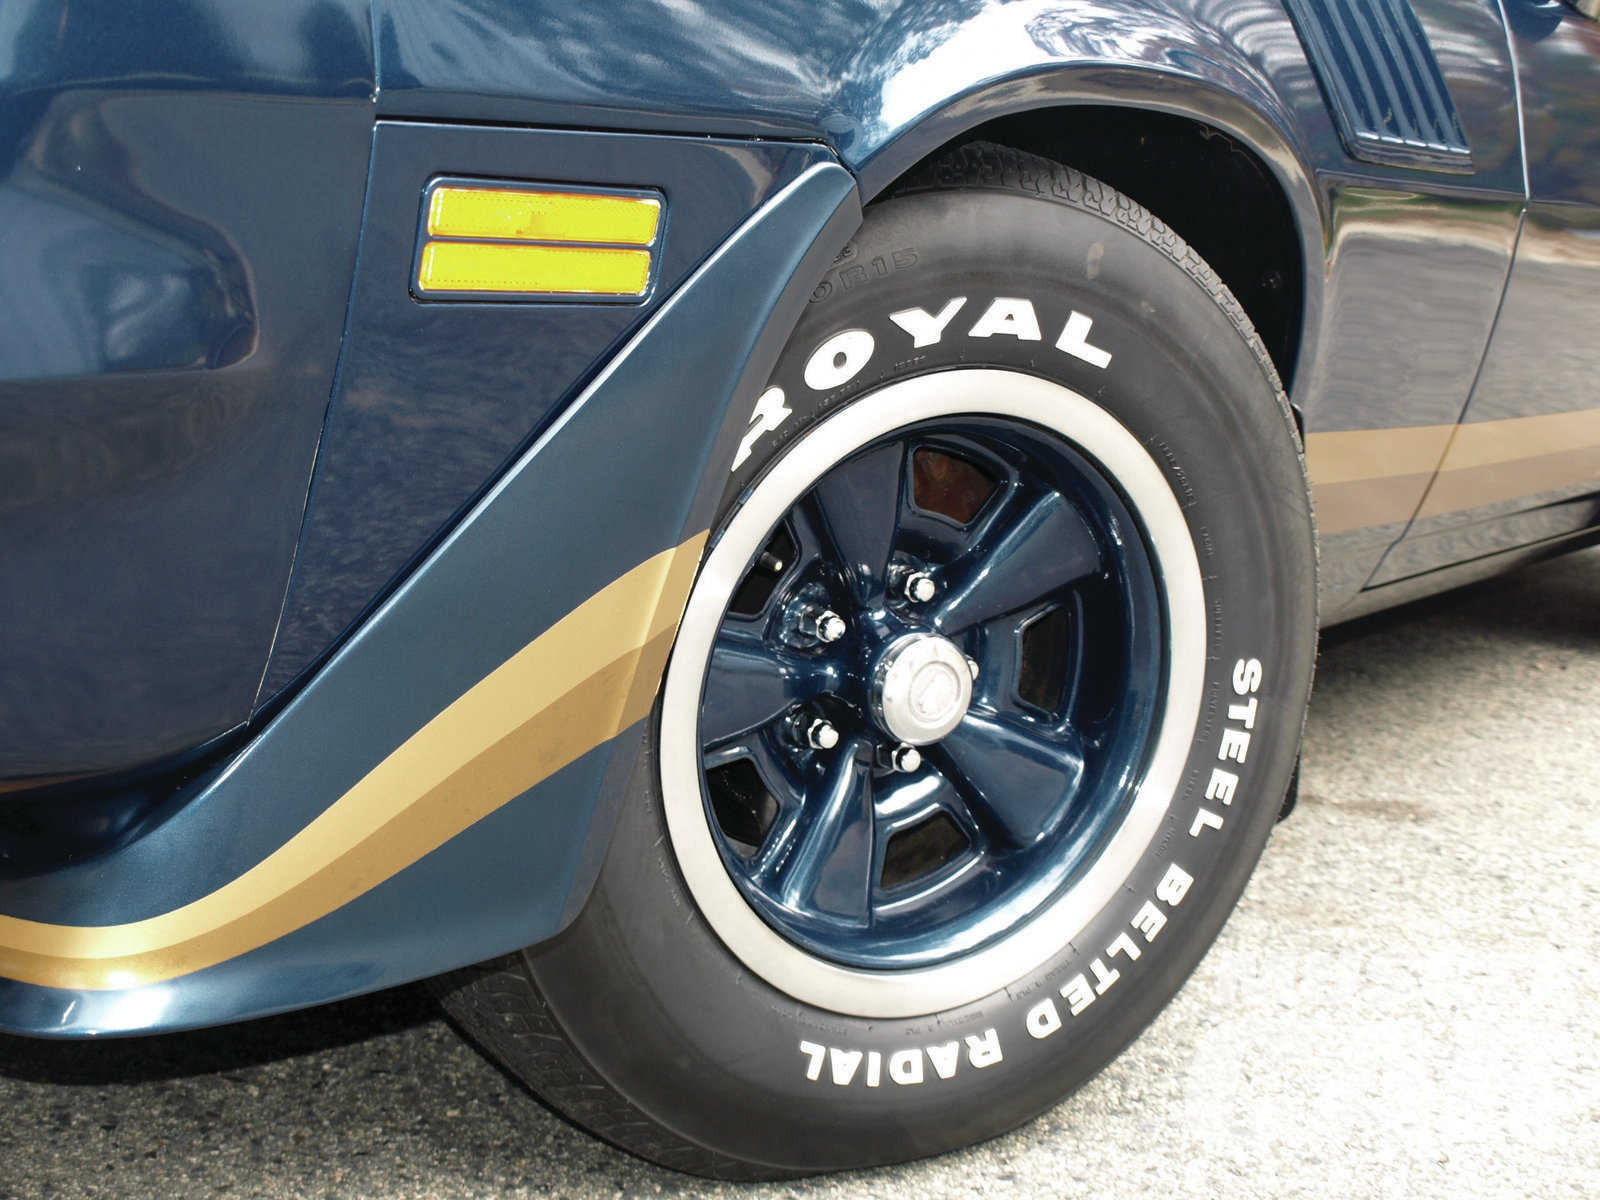 Despite being more than 30 years old, the original Uniroyal tires are in great condition and are free of dry rot. Chevrolet got plenty of mileage out of the unique 15x7JJ styled-steel wheels, which first appeared on the '70½ Z28 but also saw use on Chevelles starting with '71 models.